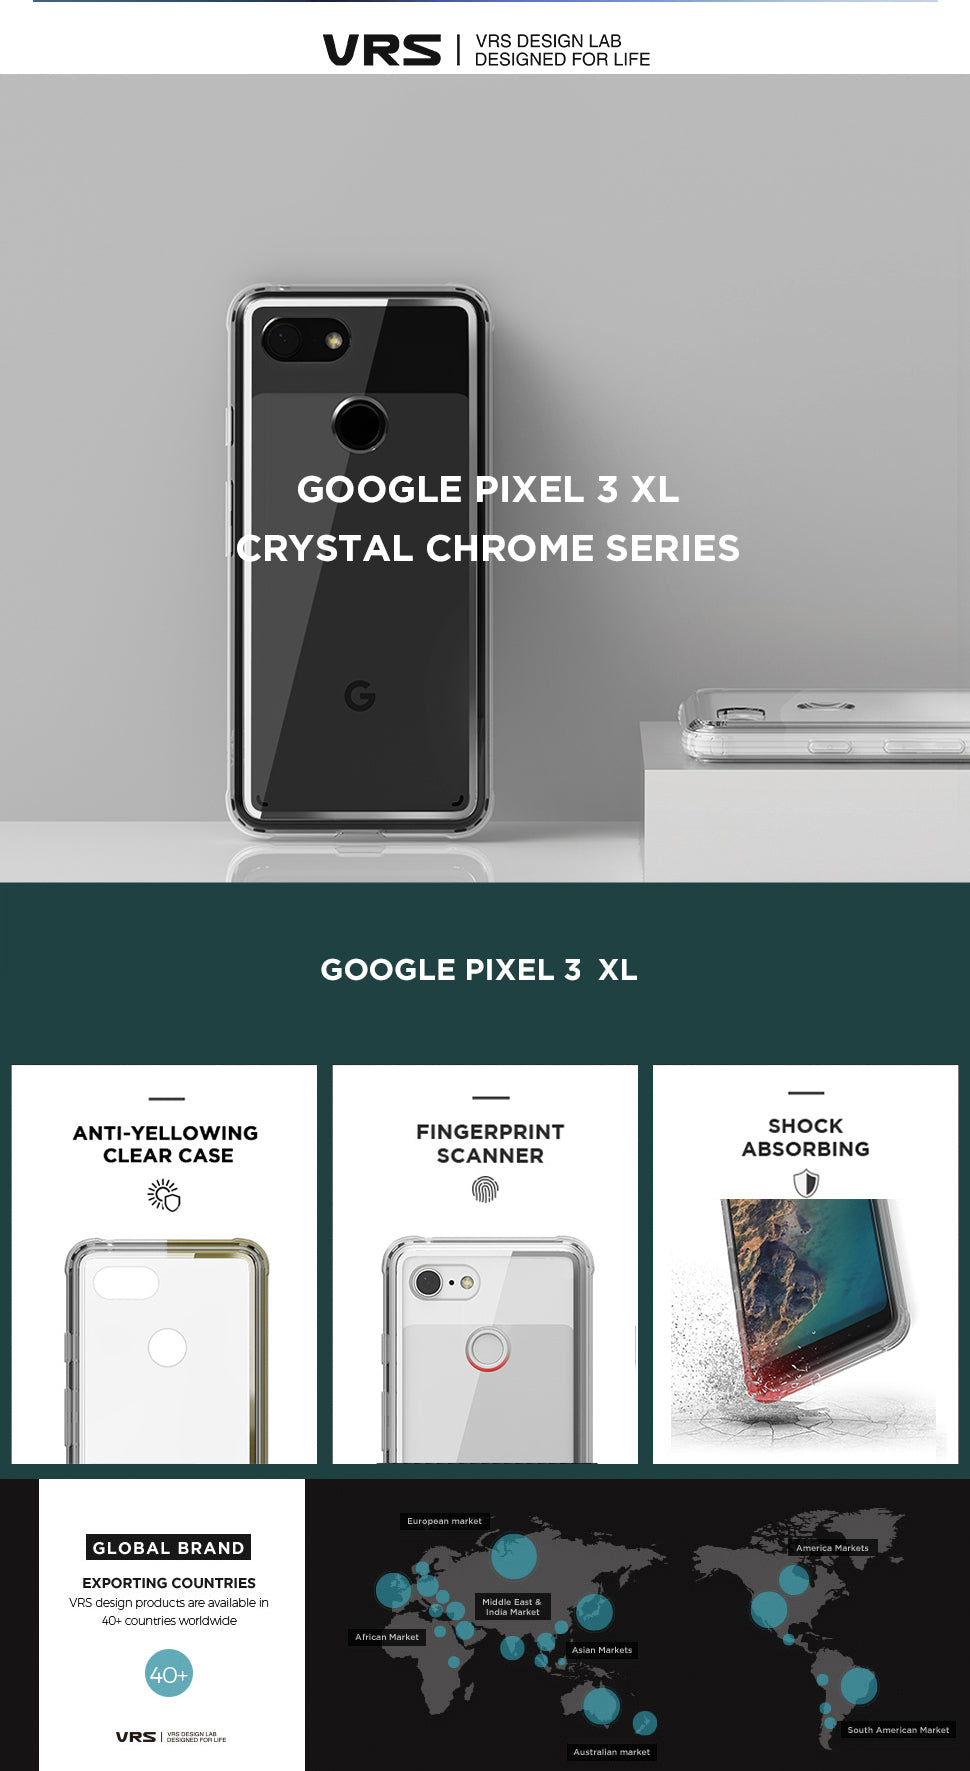 Best Clear Case for Google Pixel 3 XL Crystal Chrome Series From VRS Design